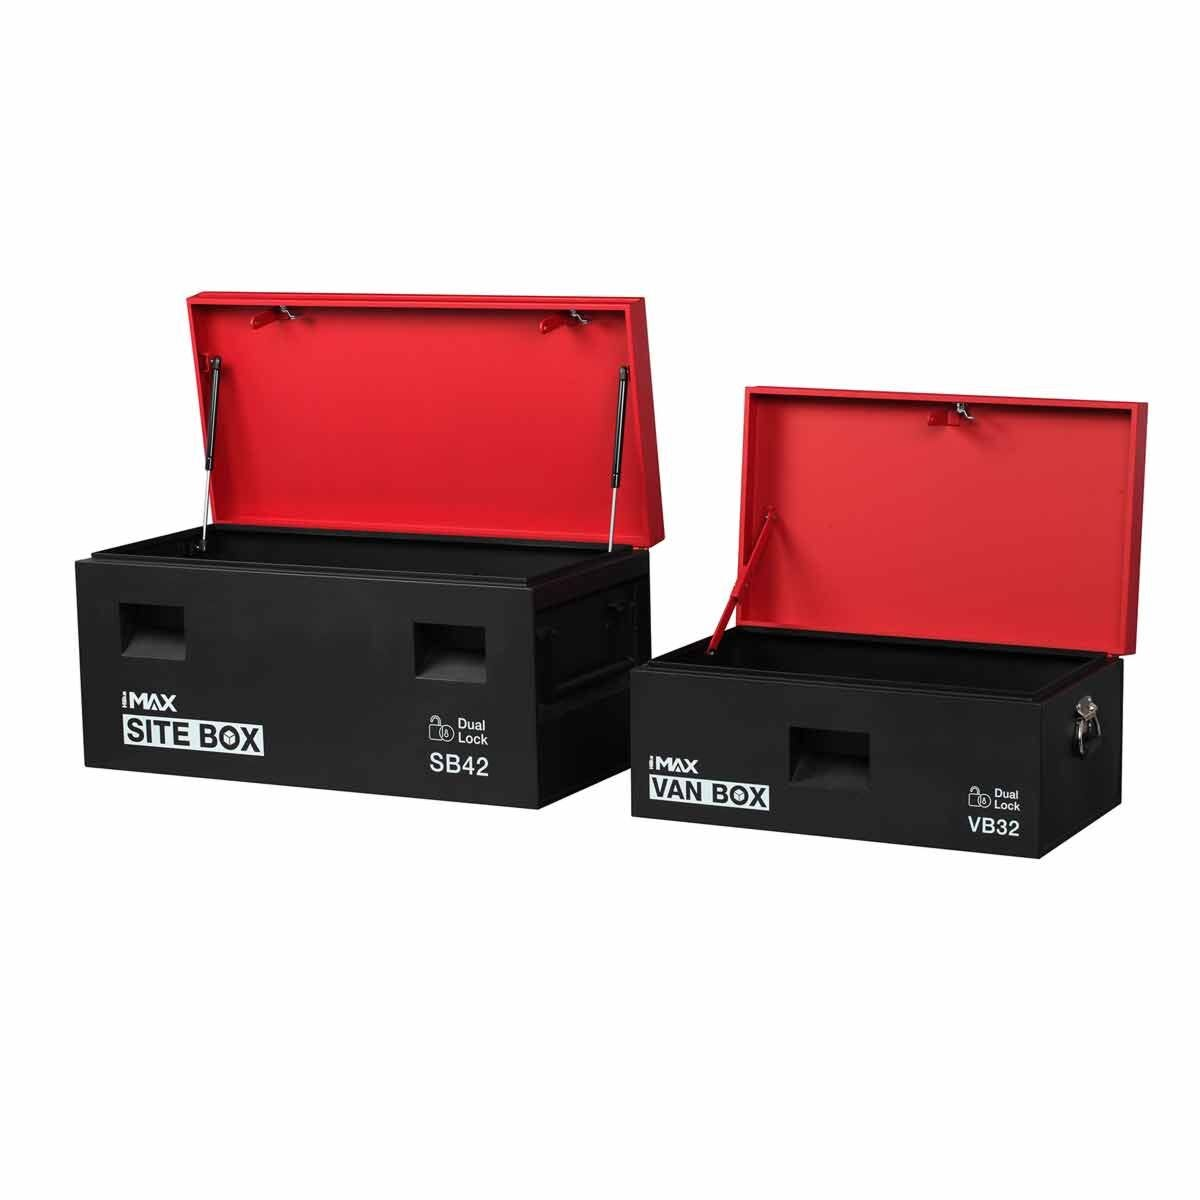 Hilka 32 Inch Van and 42 Inch Site Combination Box